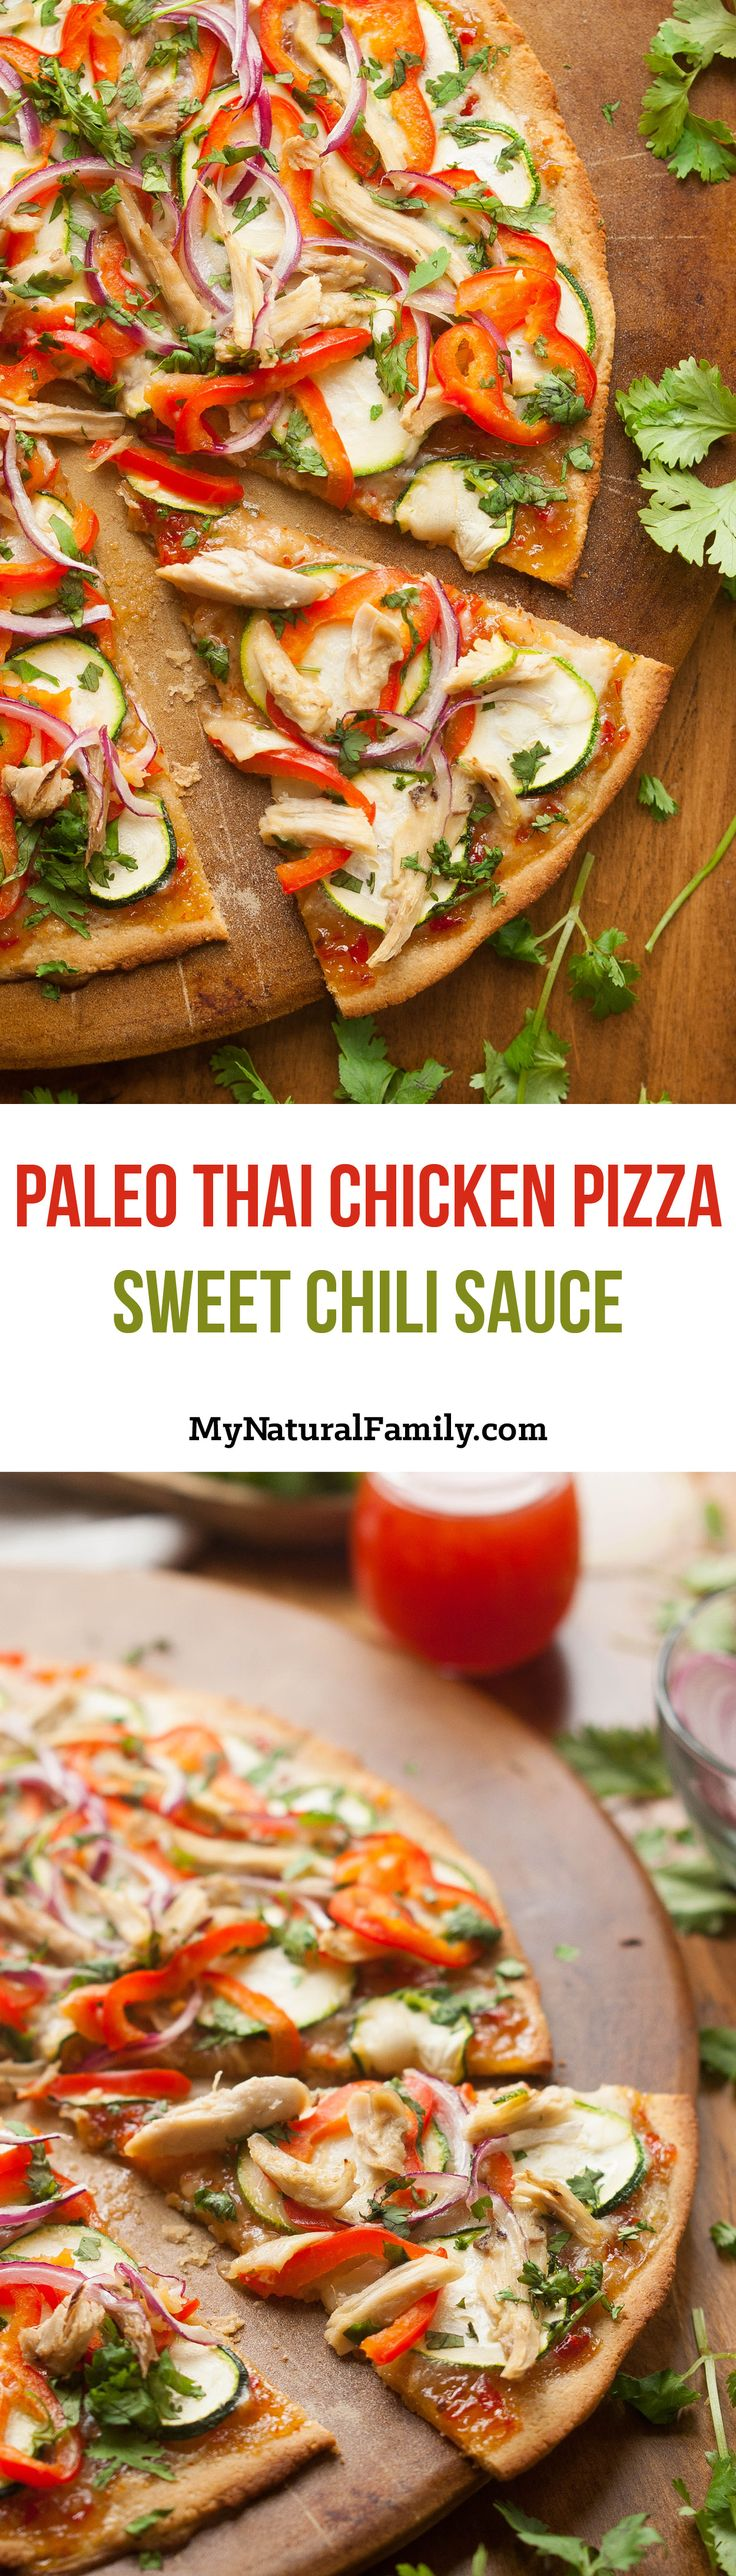 ... Thai Chicken Pizza | Recipe | Thai Chicken Pizza, Sweet Chili